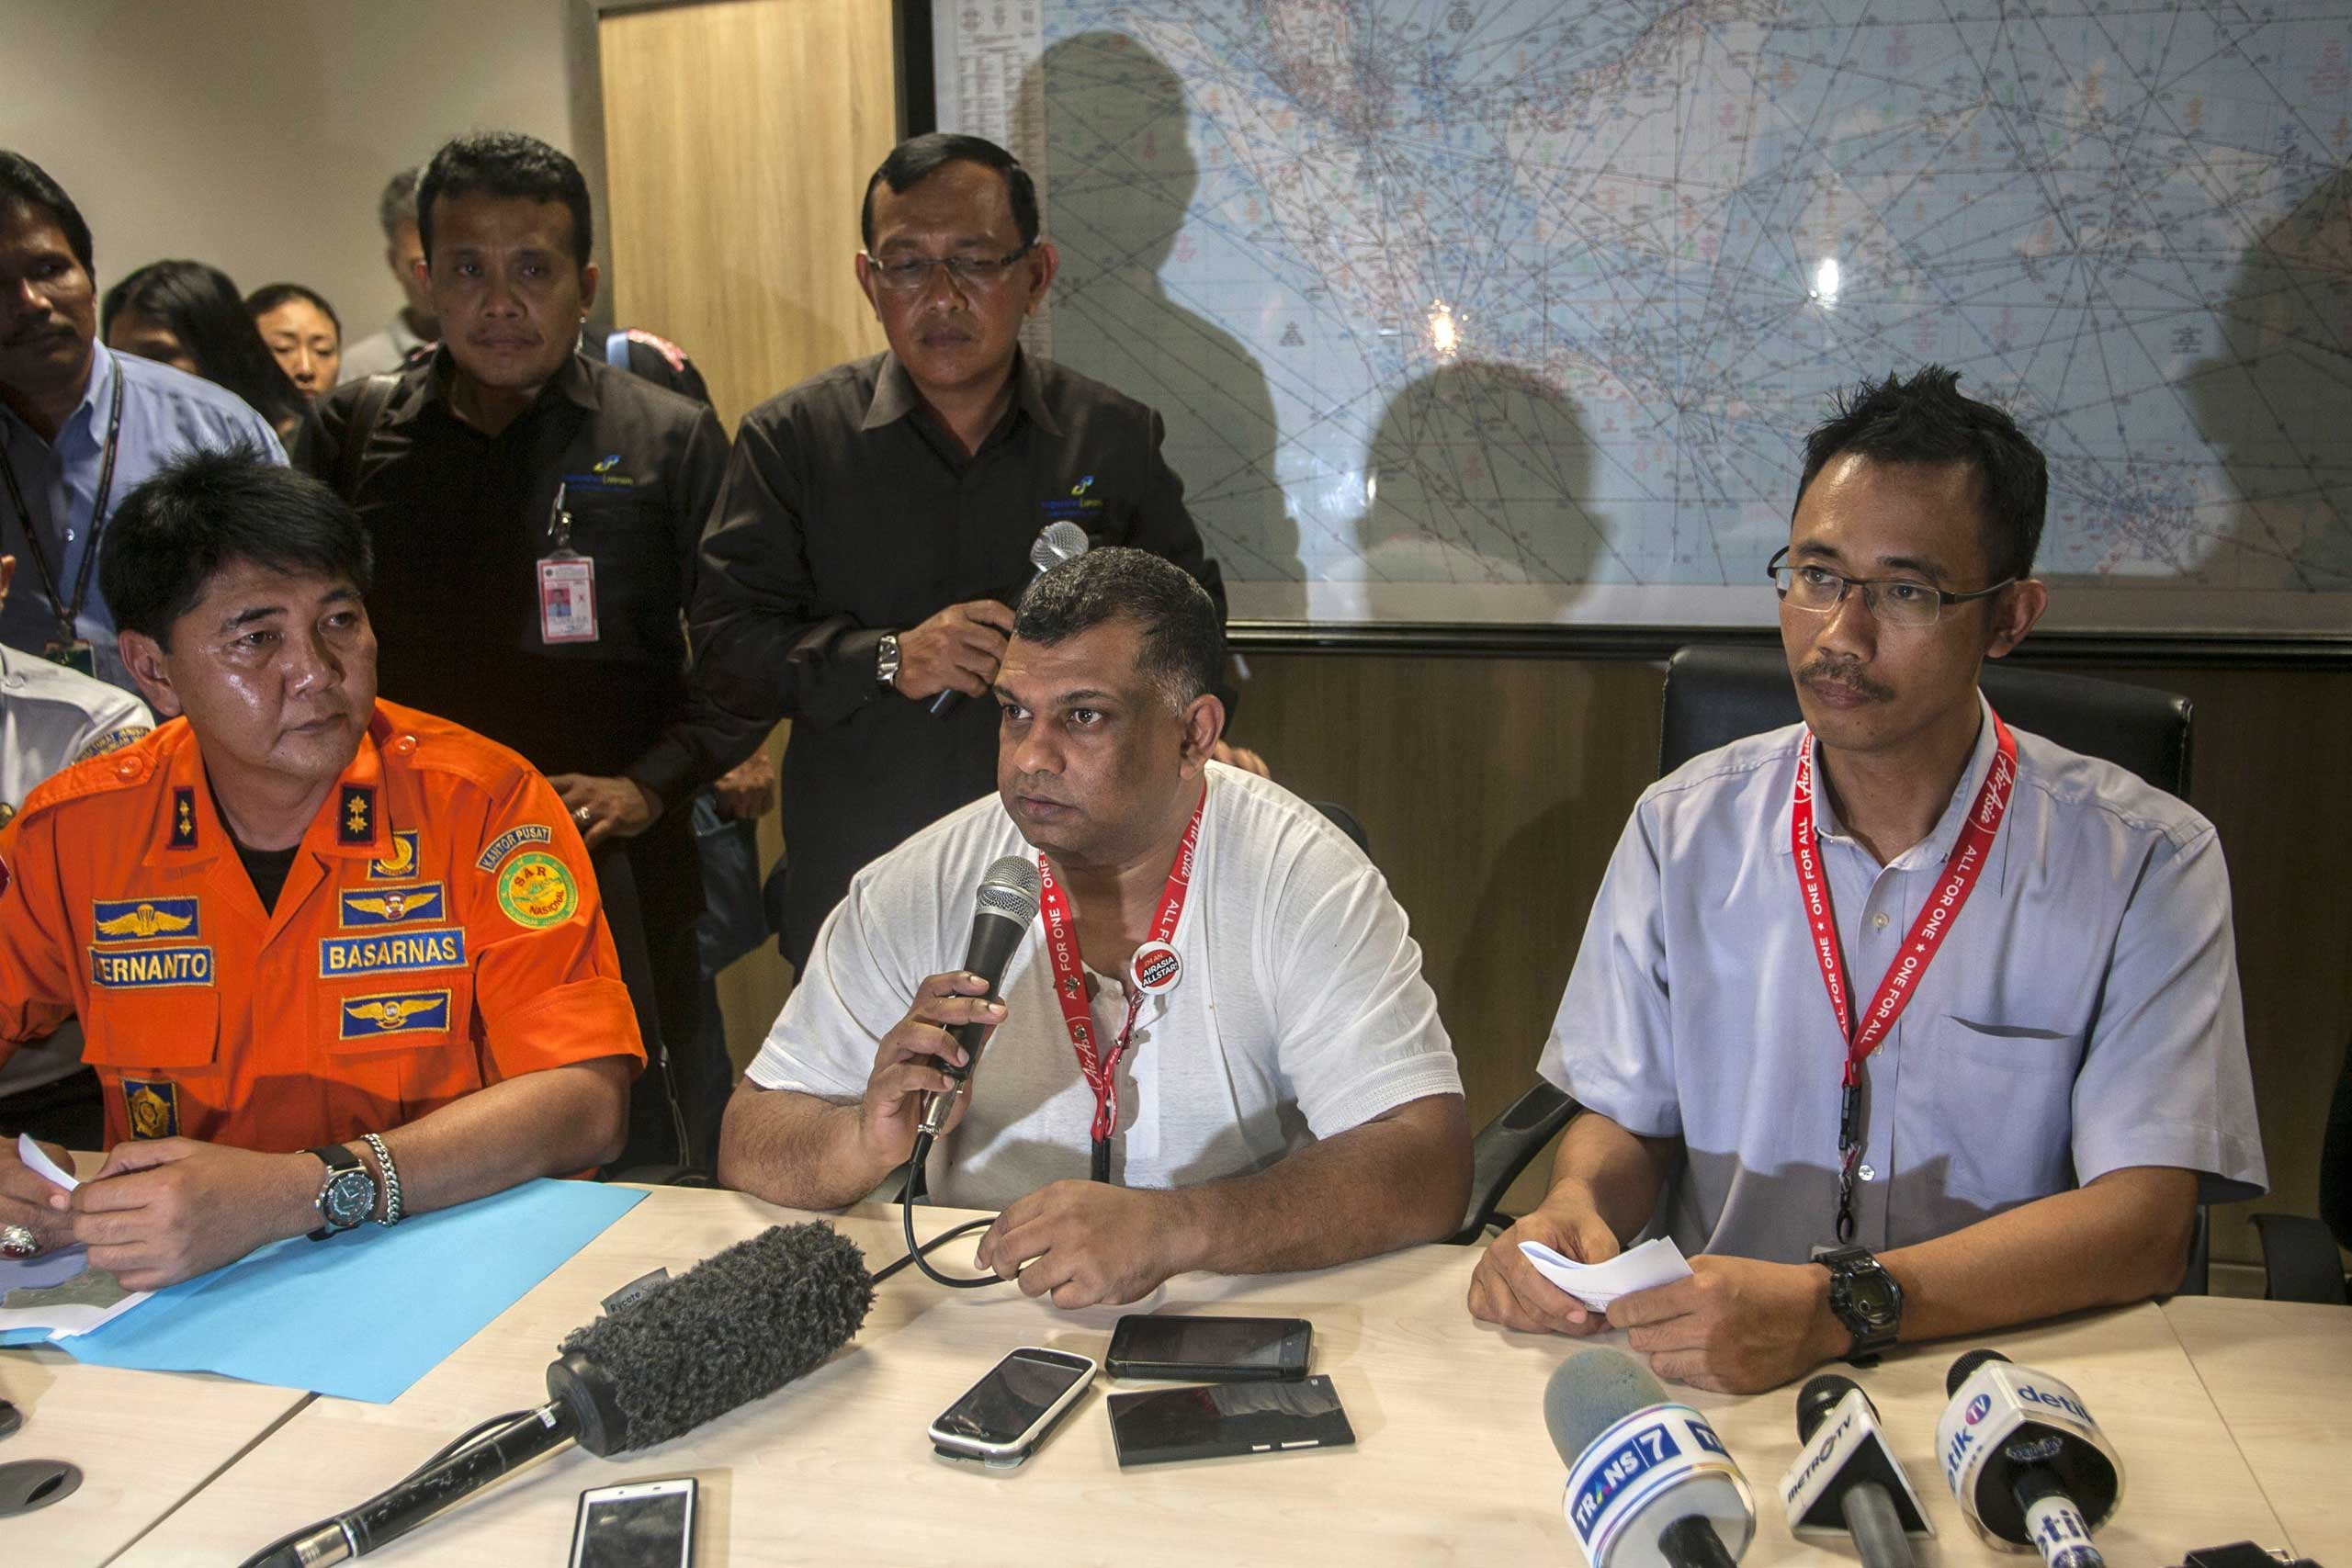 Fernandes, center,  speaks during a press conference in Surabaya, East Java, on Dec. 28, 2014, following the disappearance of AirAsia flight QZ8501.